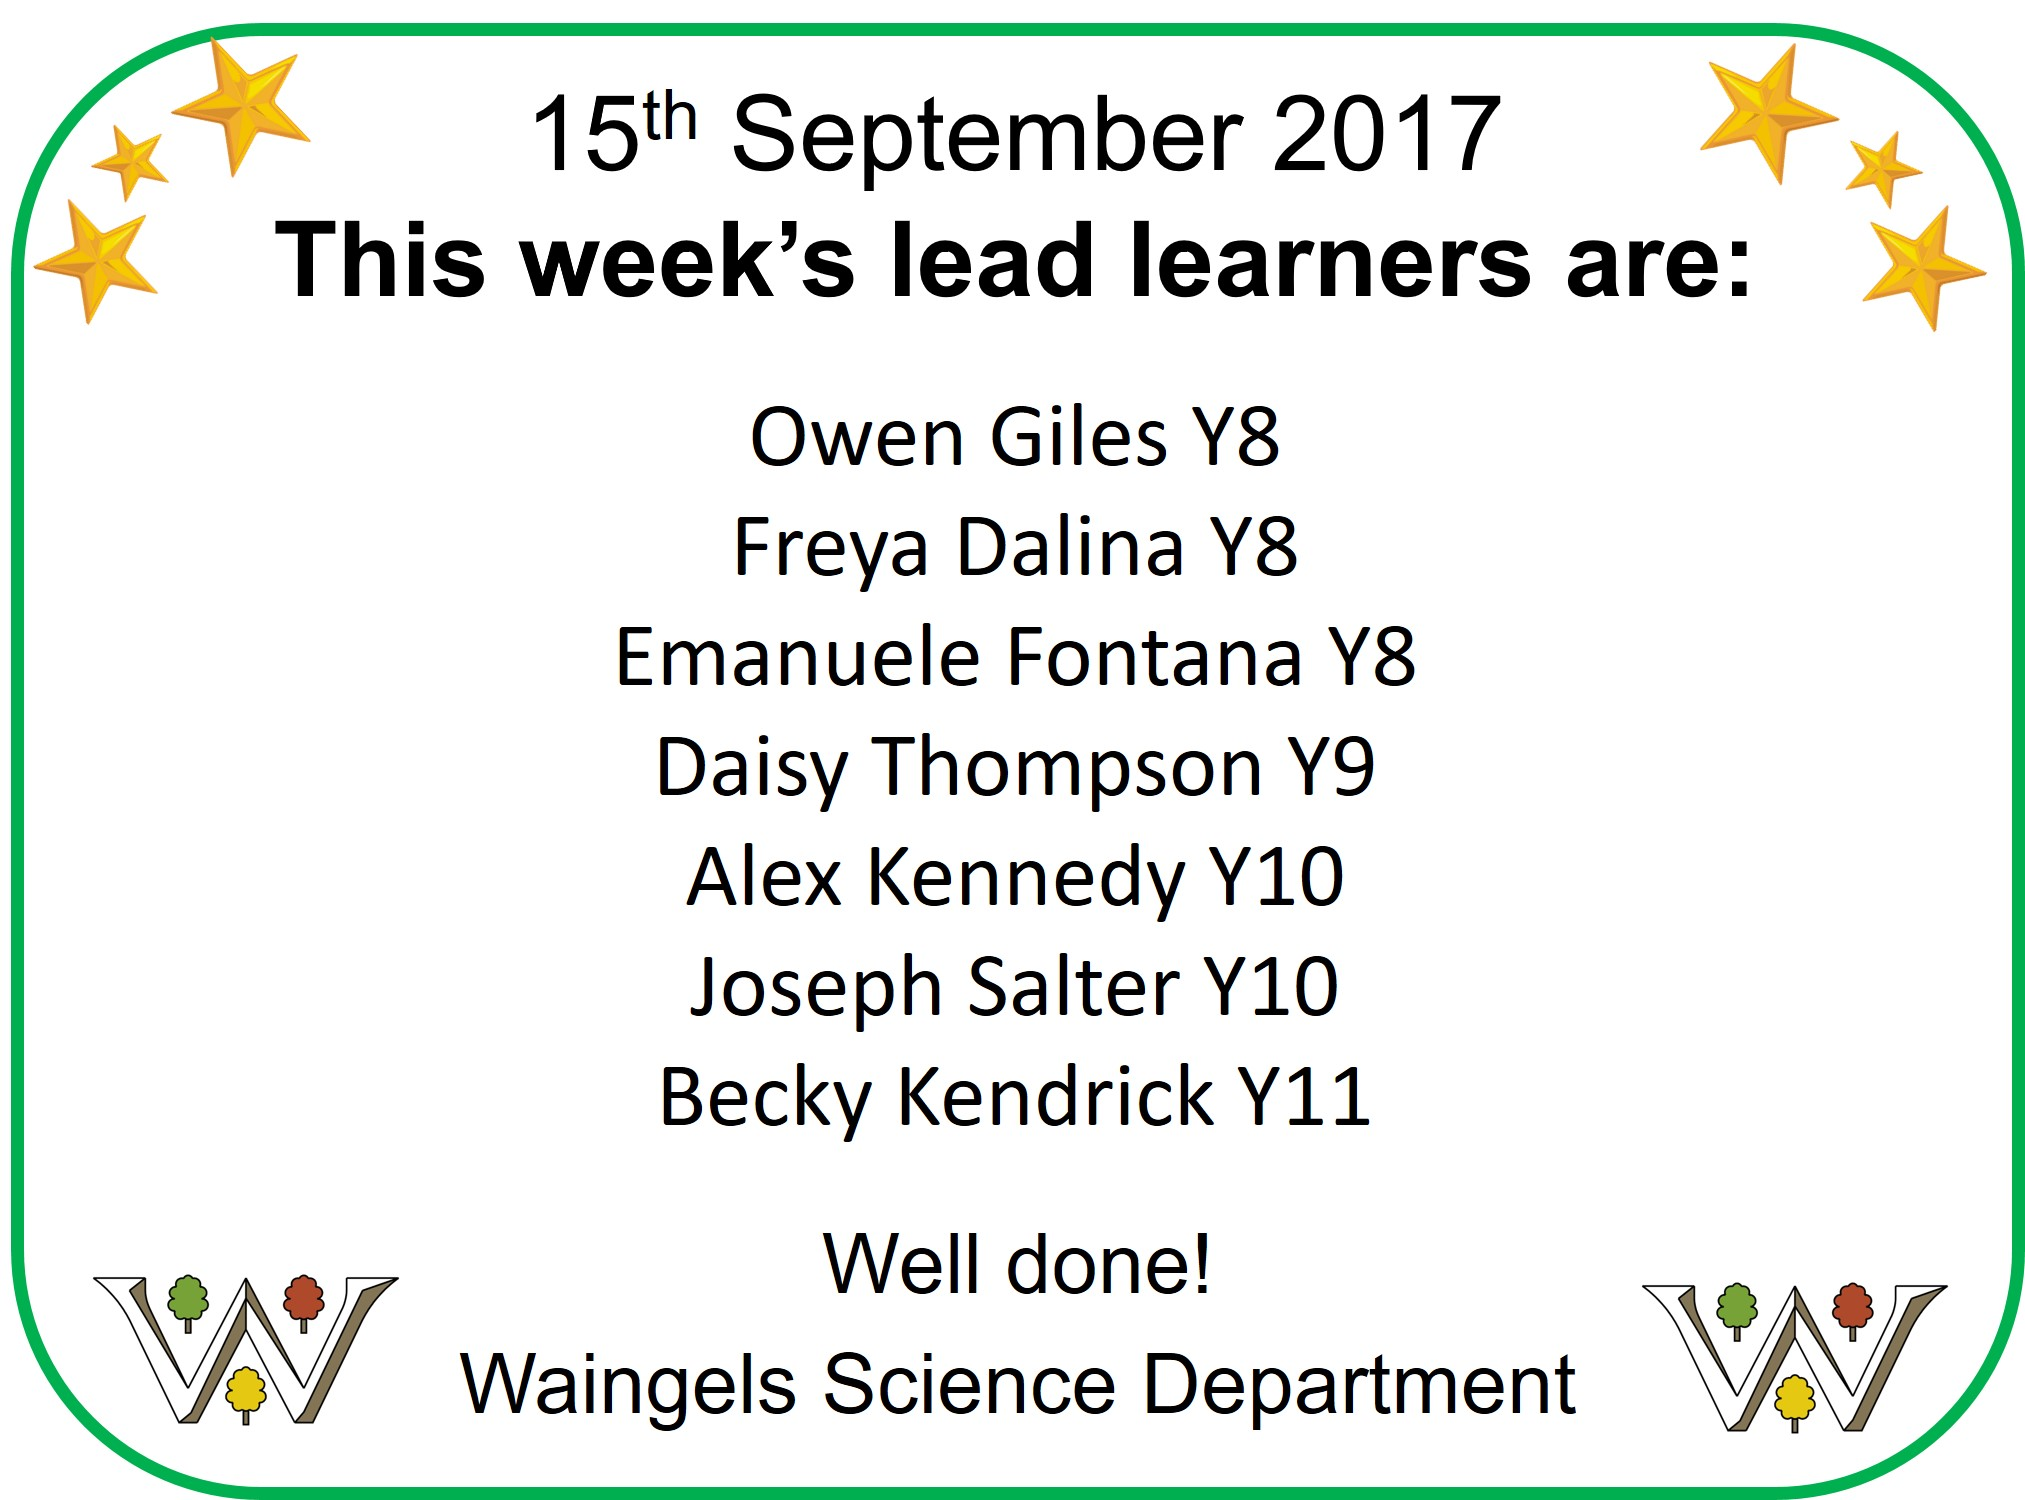 Lead Learners 15th Sept